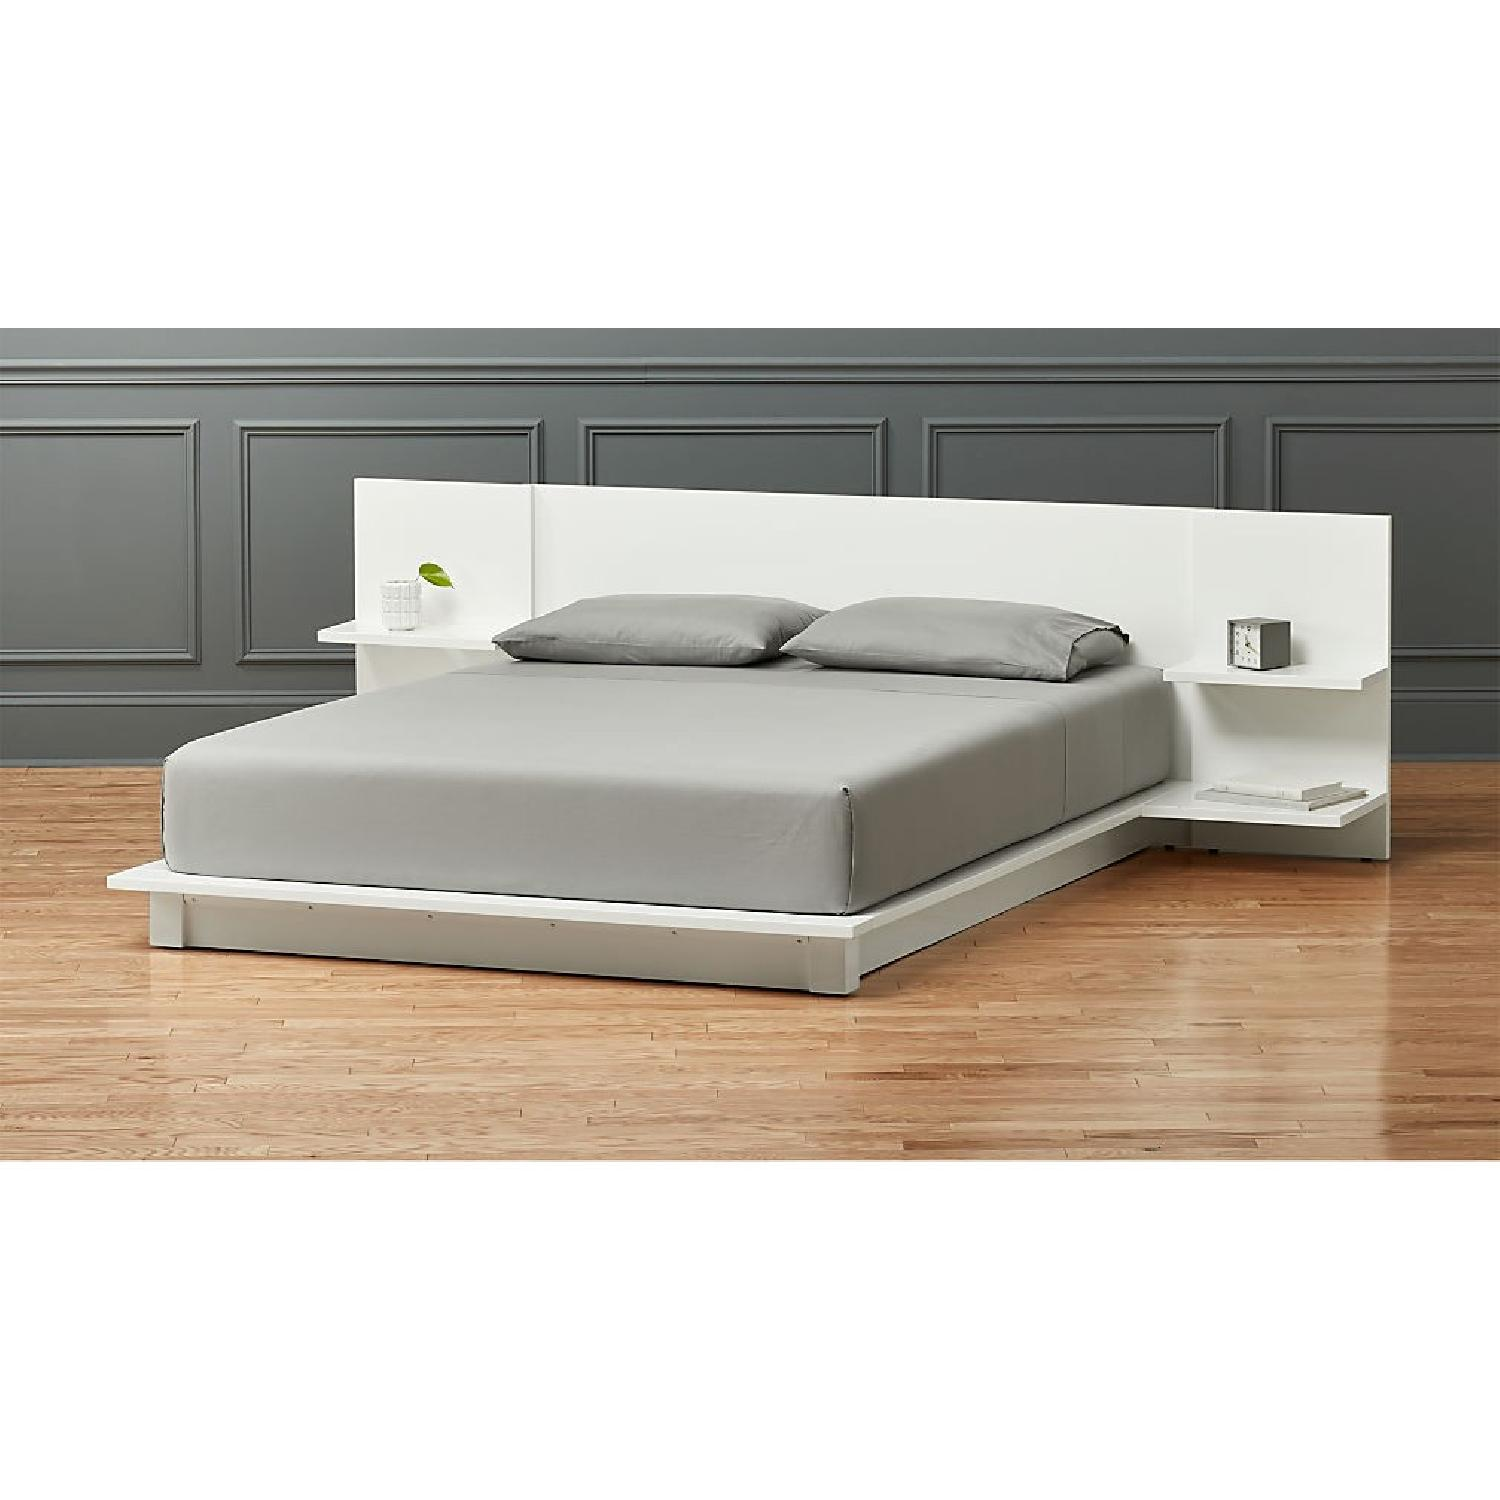 CB2 White Andes Bed - image-1